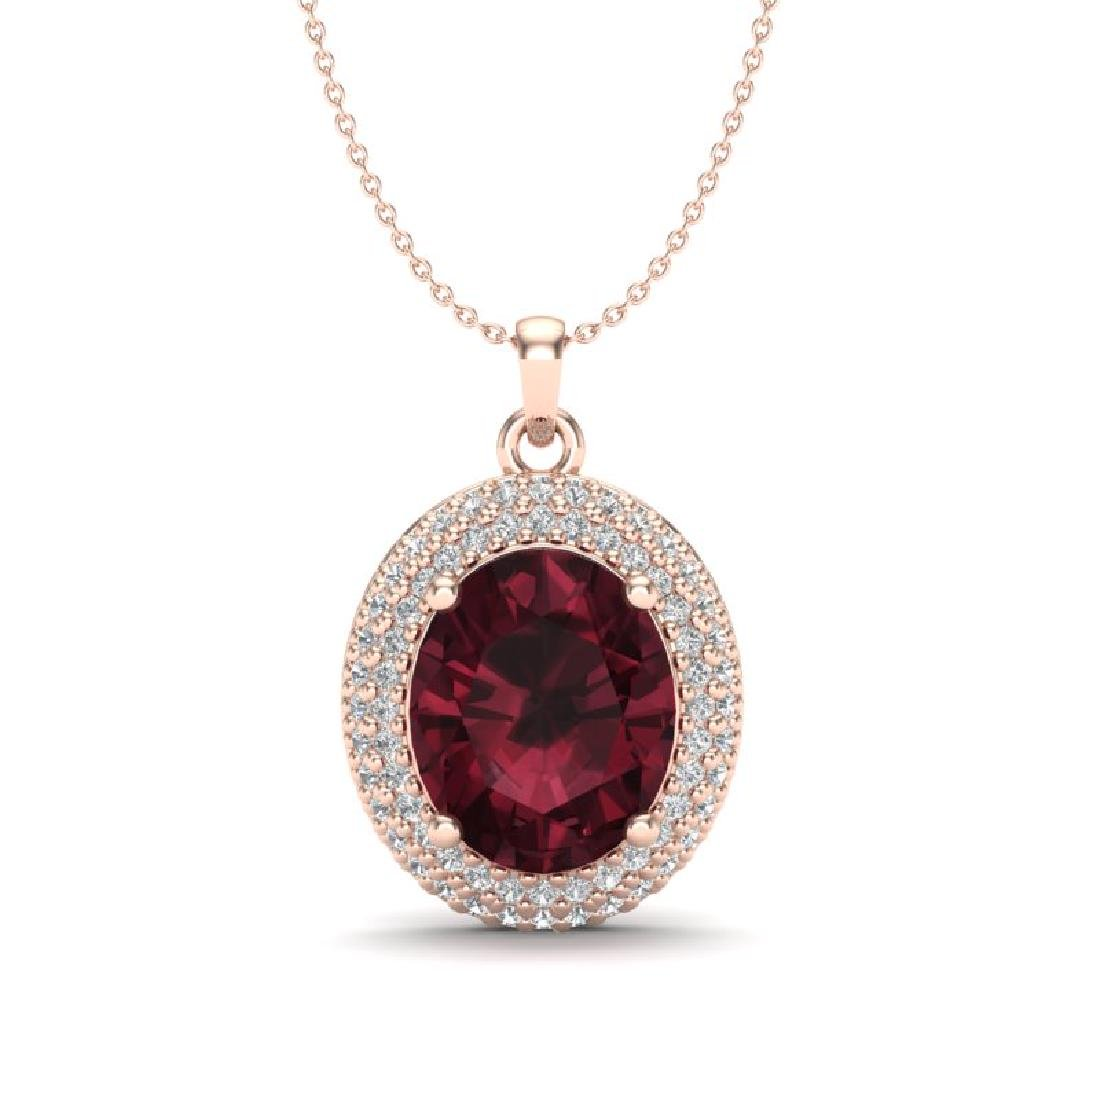 4.50 CTW Garnet & Micro Pave VS/SI Diamond Necklace 14K